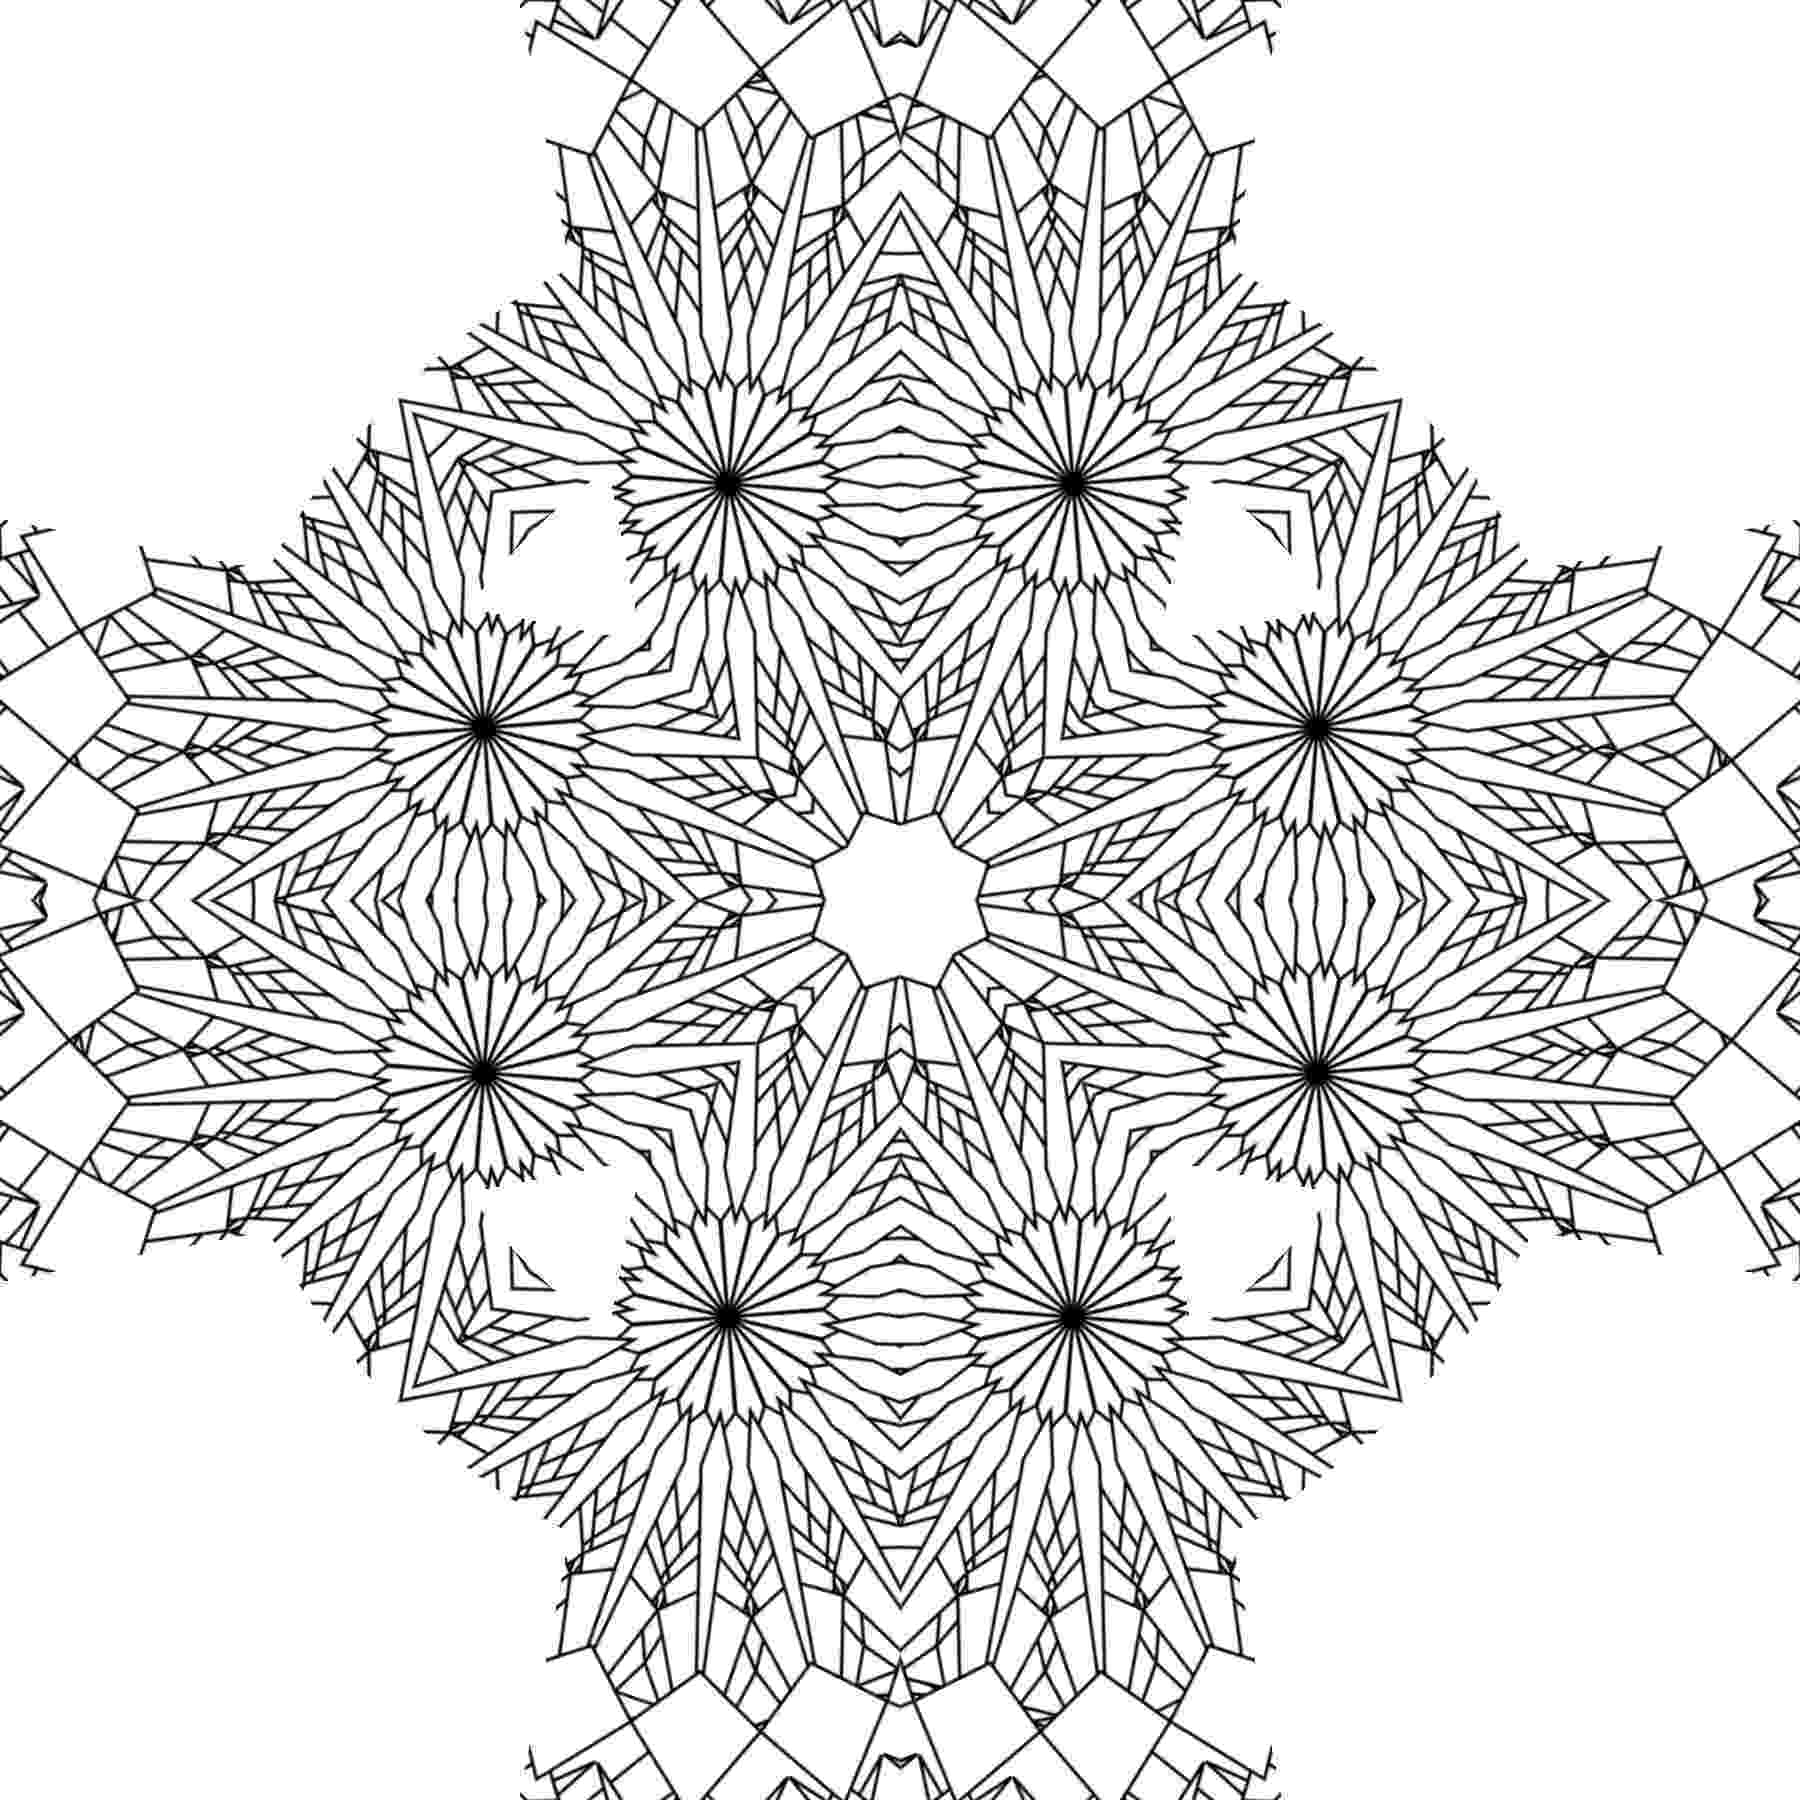 colouring patterns free printable abstract coloring pages for adults patterns colouring